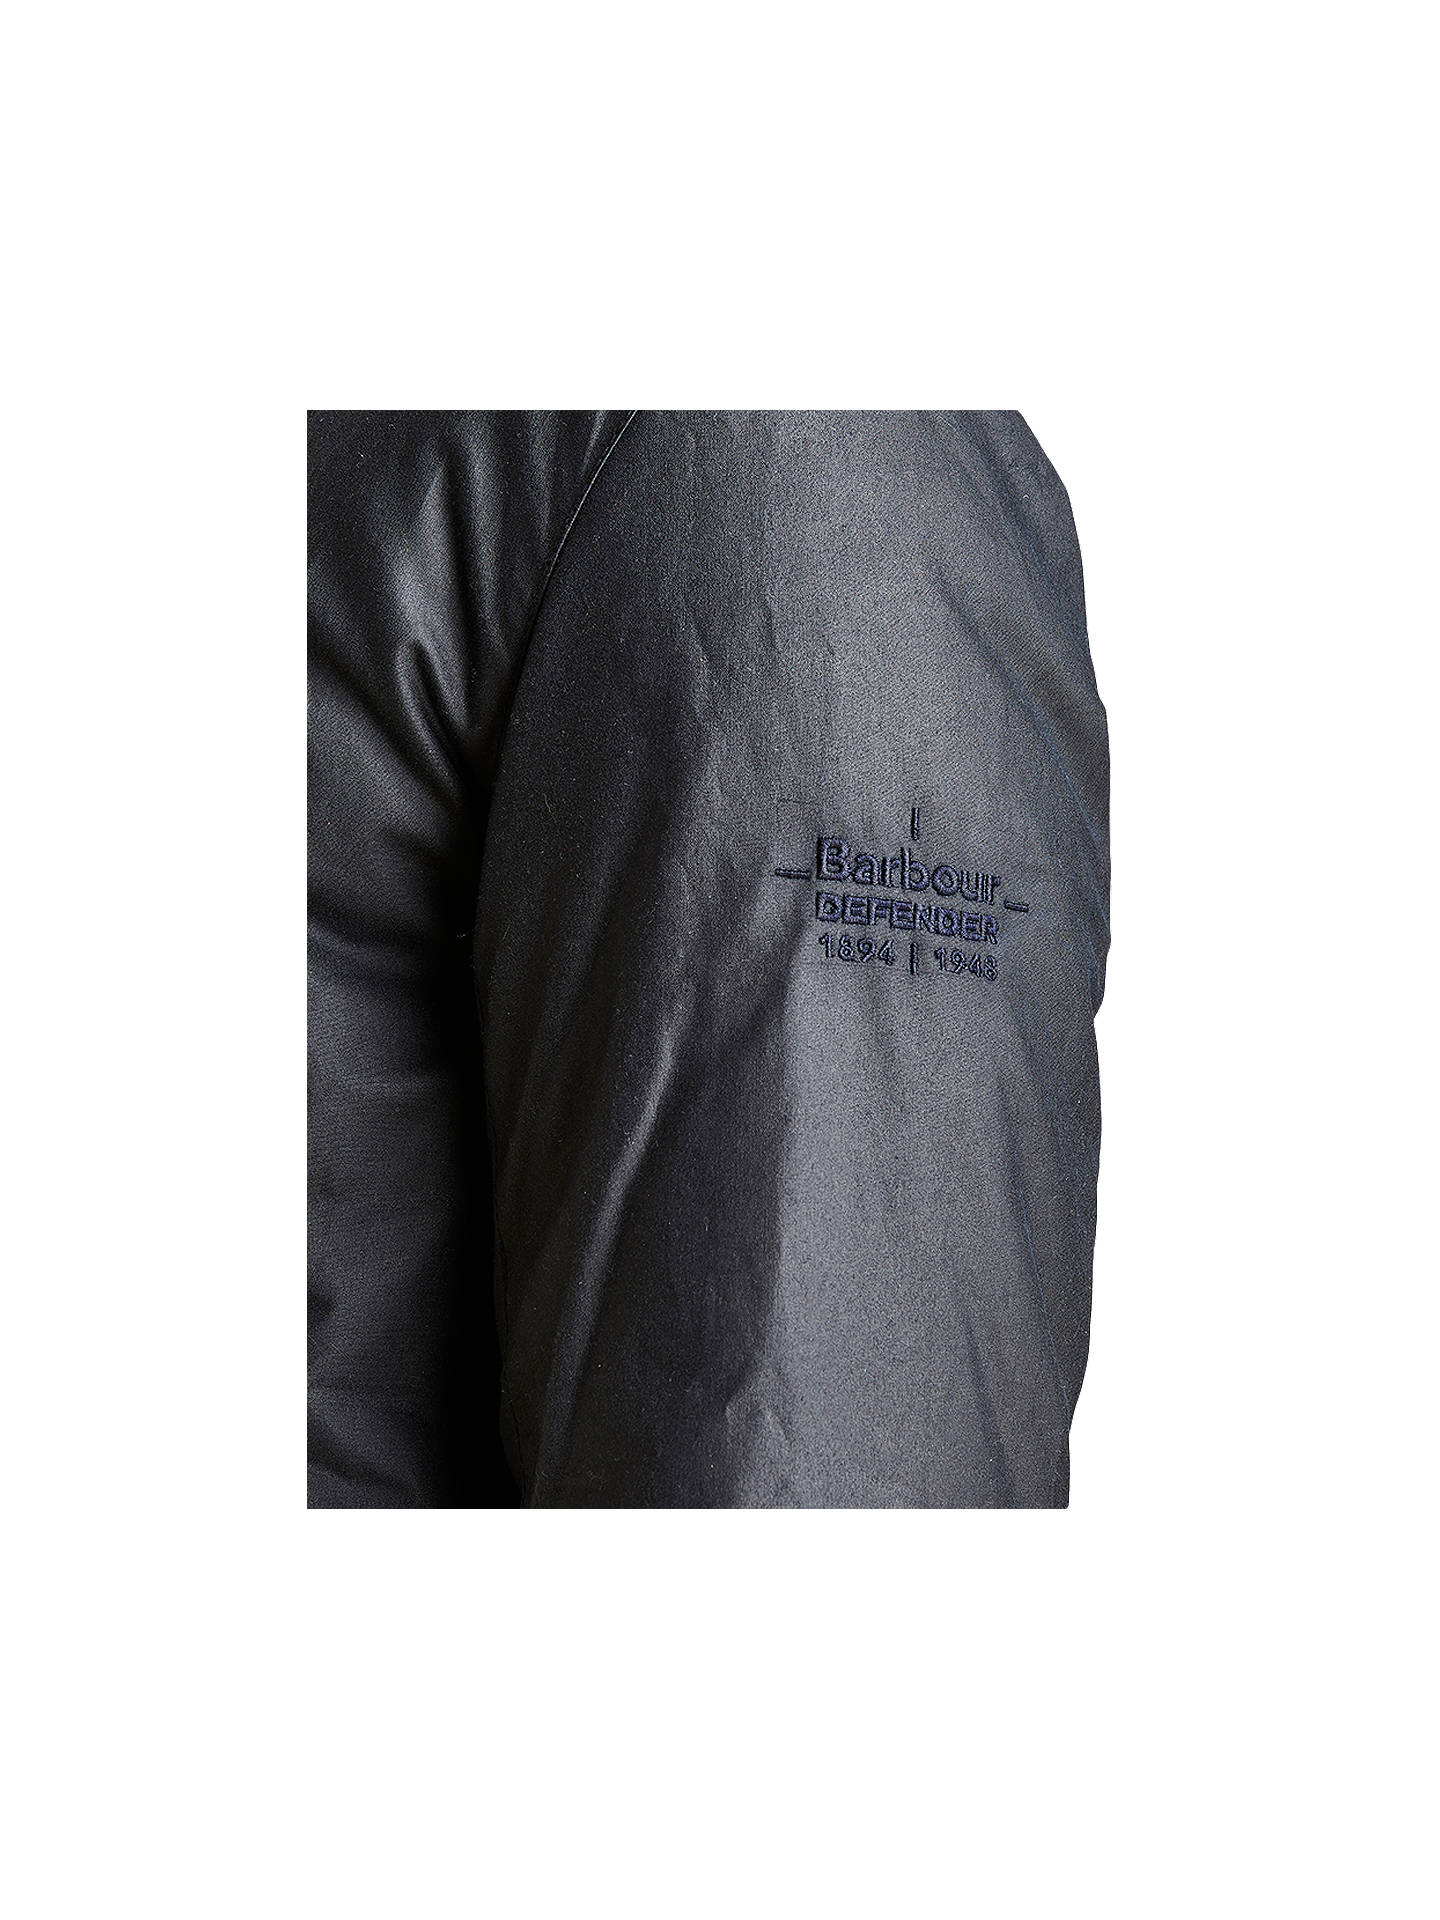 BuyBarbour Land Rover Defender Eden Quilted Jacket, Blue, M Online at johnlewis.com